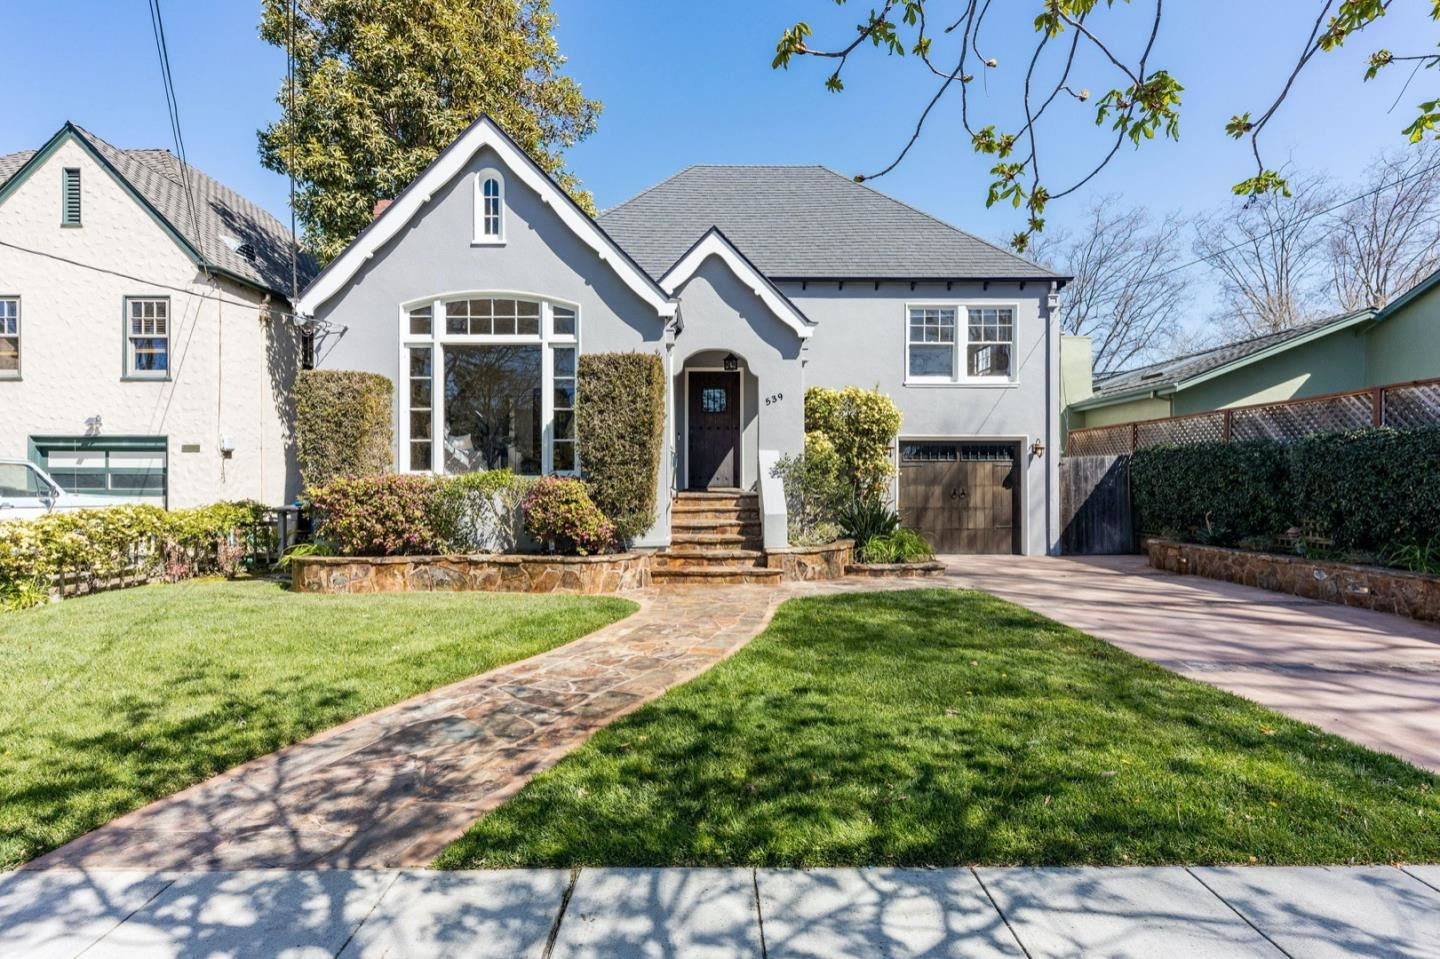 Photo for 539 Francisco DR, BURLINGAME, CA 94010 (MLS # ML81836127)